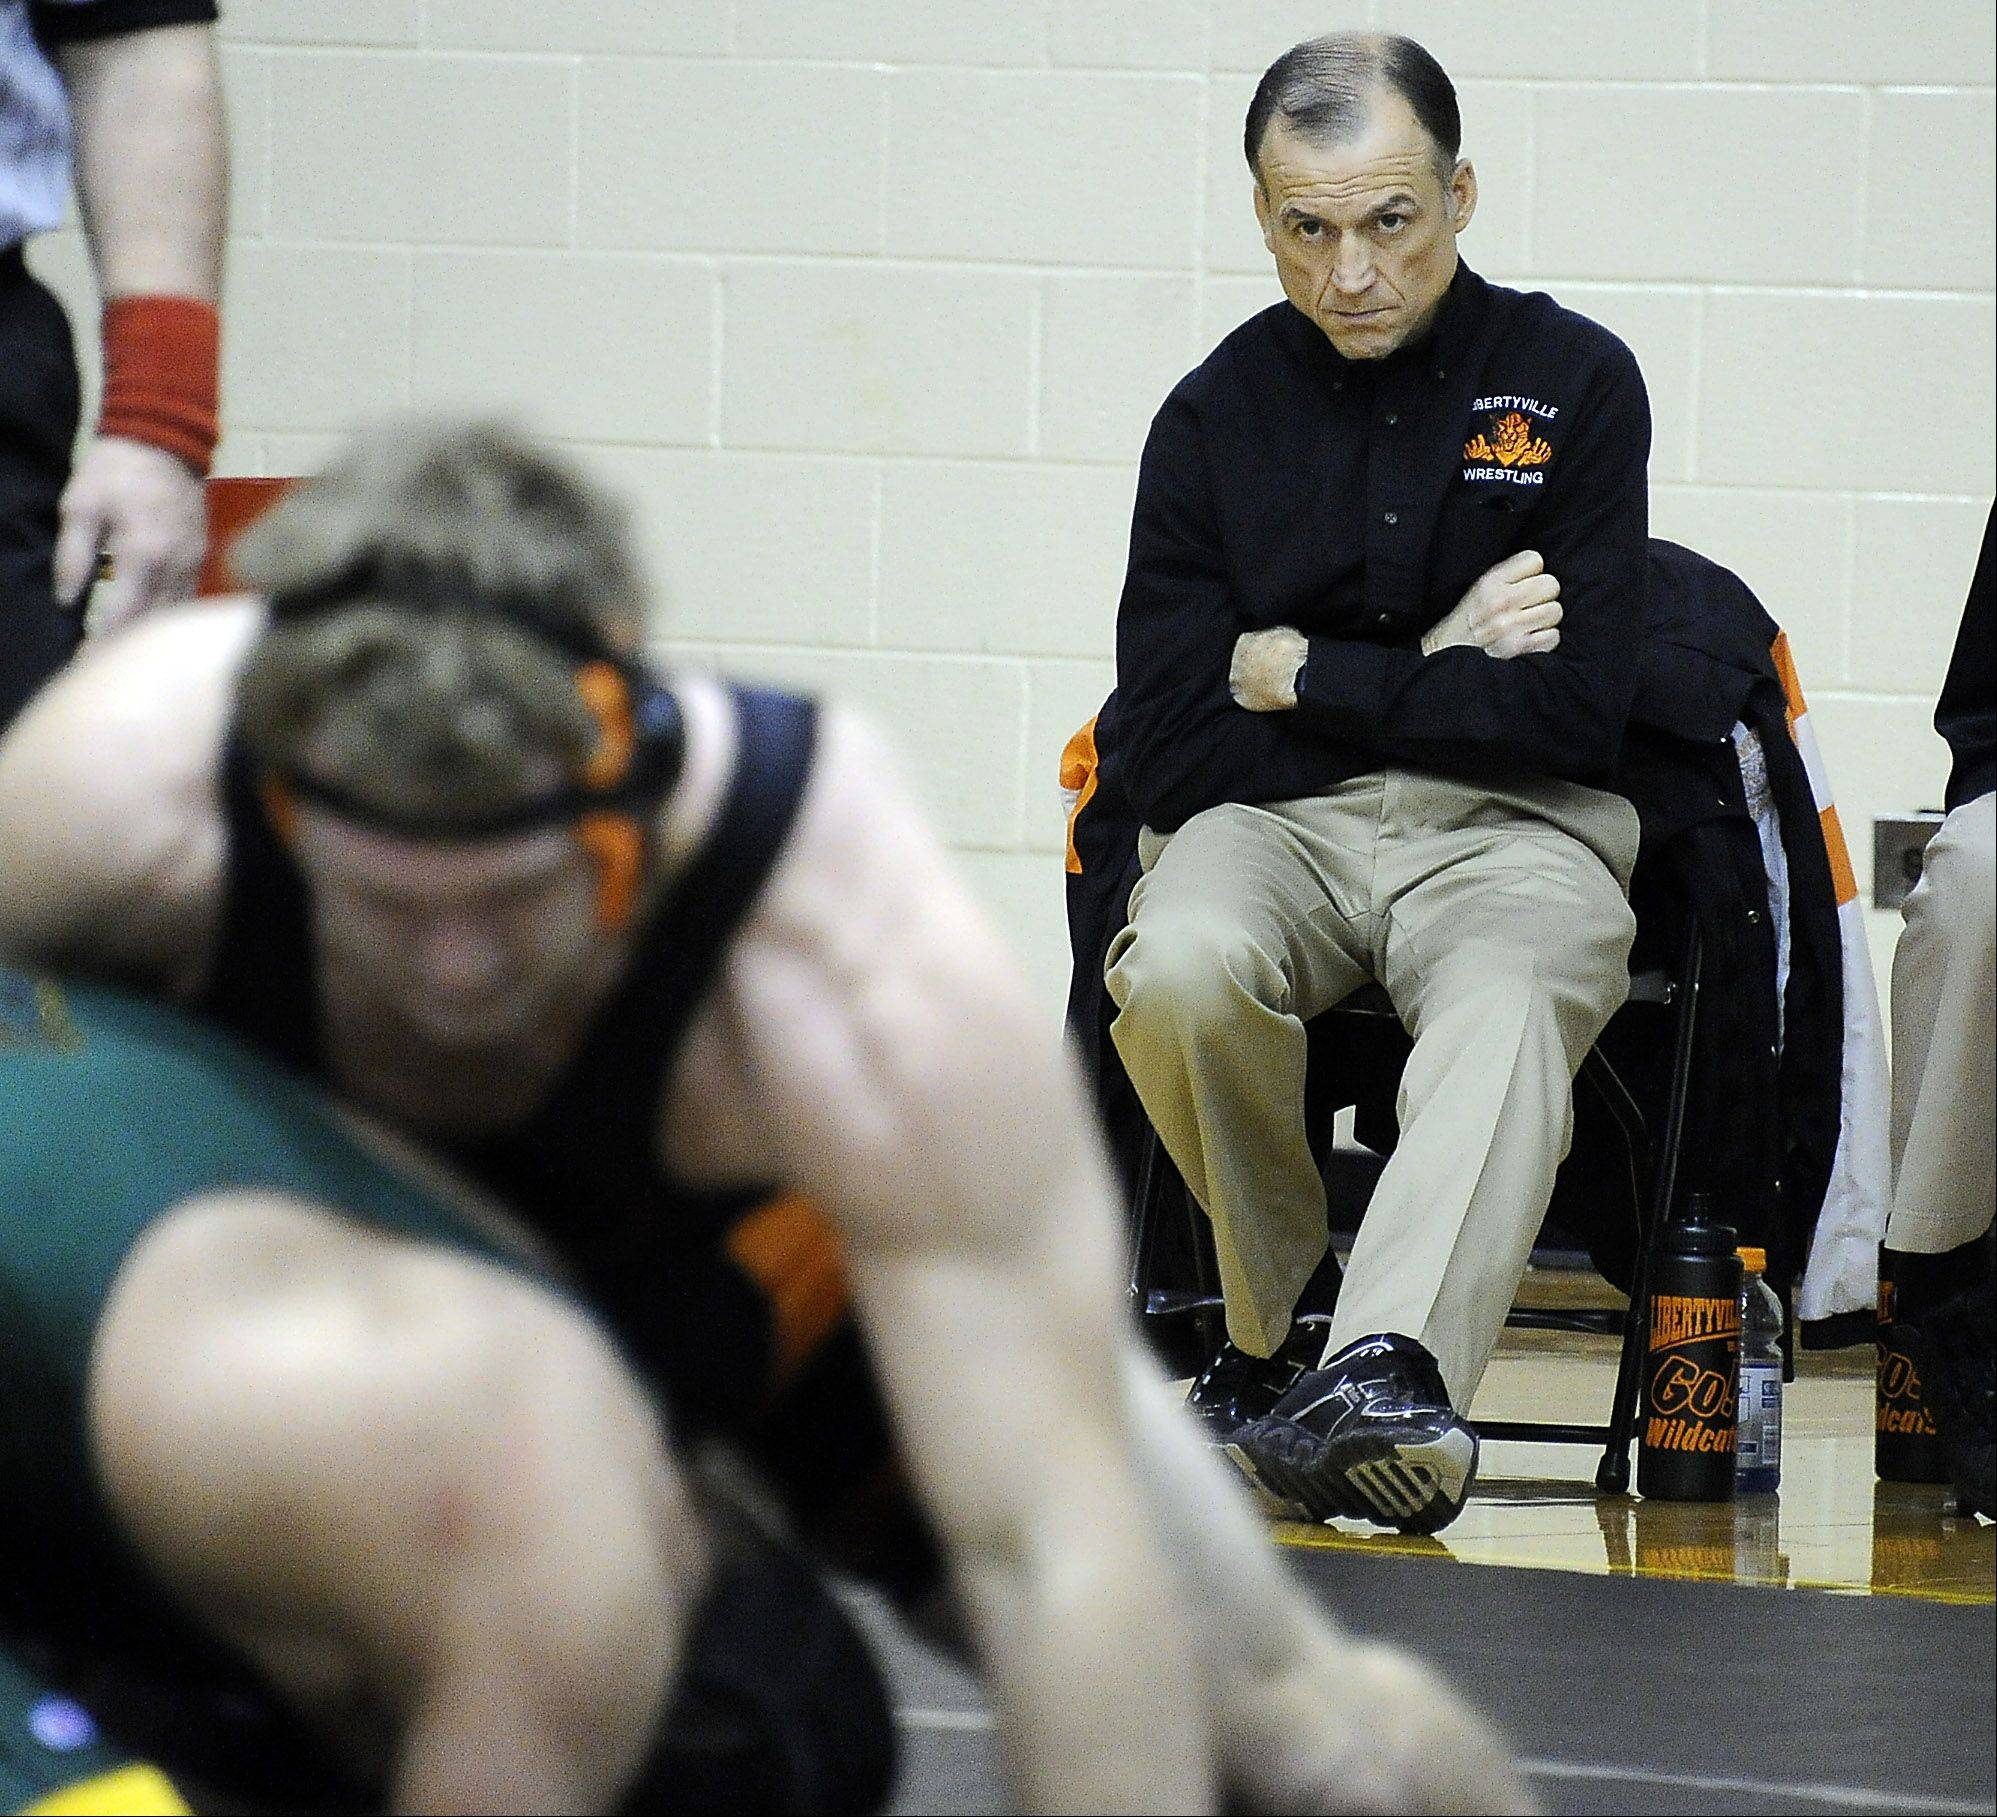 Libertyville wrestling coach Dale Eggert watches with purpose as his one of his wrestlers competes against Crystal Lake South in Saturday's quad at Schaumburg.